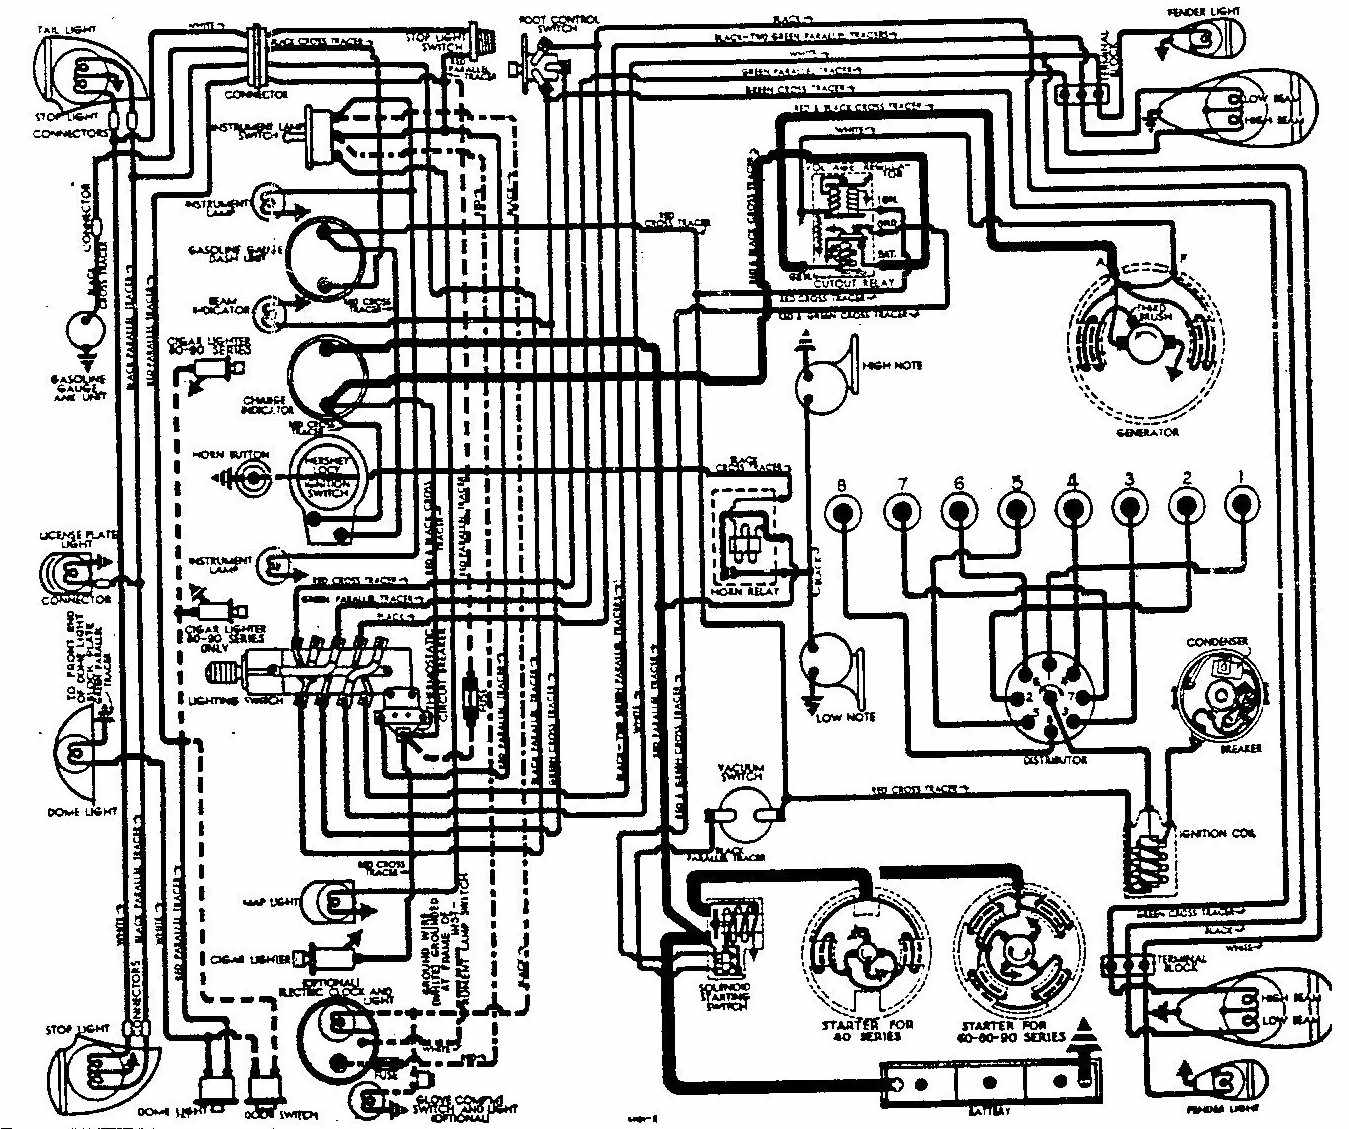 Ford 7710 Tractor Wiring Diagram. Ford. Discover Your Wiring ... Ford Tractor Alternator Wiring Diagram on ford tractor fuse block diagram, ford tractor 4 cylinder diesel engine, diesel tractor wiring diagram, ford tractor 12 volt conversion diagram, ford one wire alternator diagram, ford alternator parts diagram, generator to alternator conversion diagram, ford truck alternator diagram, ford 9n wiring-diagram, ford 600 wiring diagram, ford 800 wiring diagram, ford tractor shift pattern, john deere b tractor wiring diagram, ford tractor electrical diagram, ford f-150 starter solenoid wiring diagram, ford 8n alternator conversion diagram, ford 8n hydraulic pressure relief valve, ford tractor hydraulic diagram, ford 600 tractor wiring, ford alternator wiring harness,